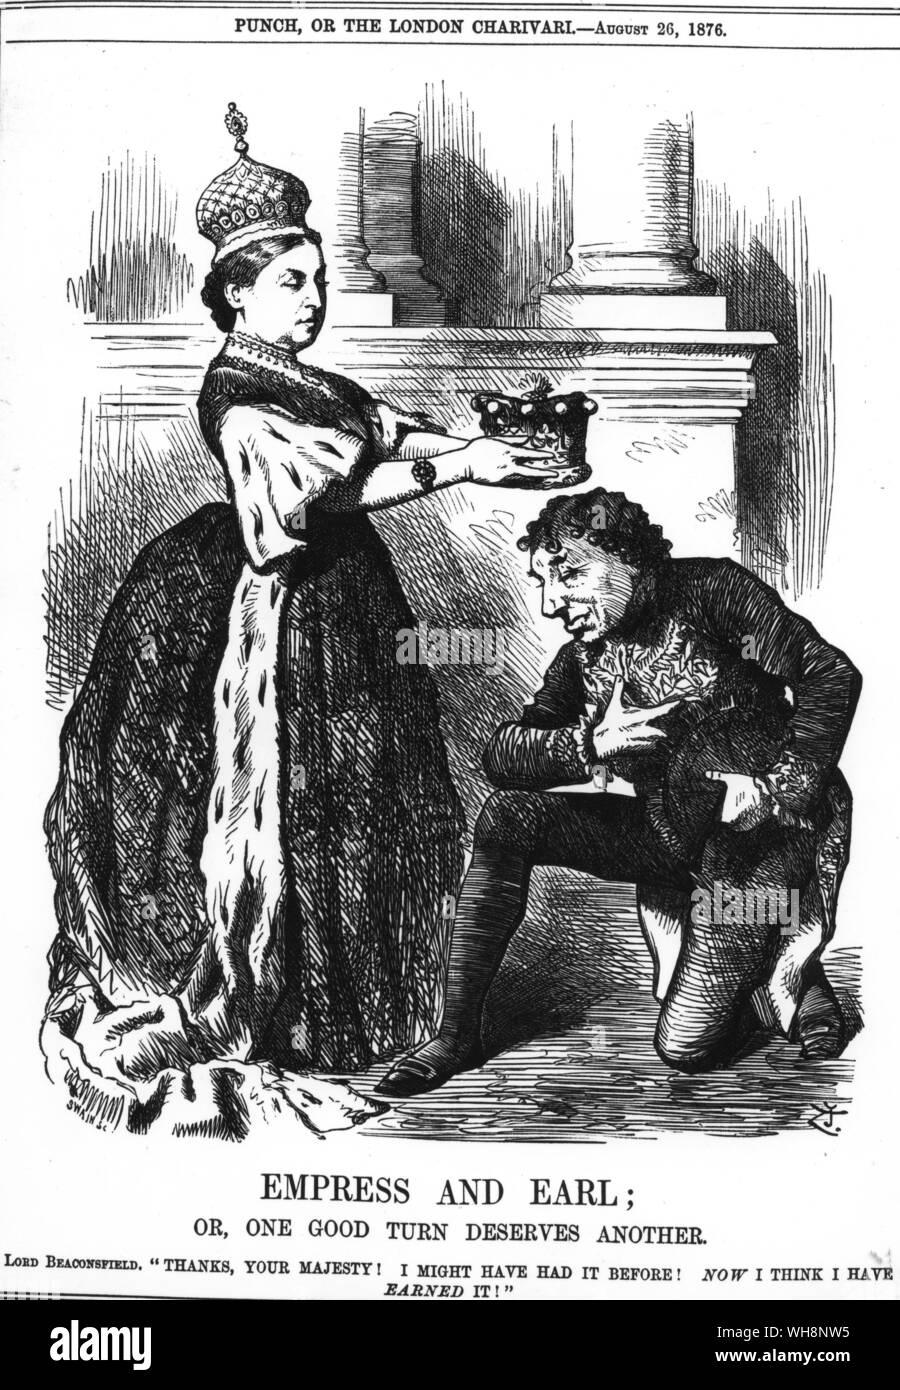 Queen Victoria created Disraeli Earl of Beaconfield in August 1876 in return for his successful engineering through Parliament of the Royal Titles Bill making the Queen Empress of India '. Empress and Earl. Or, one good turn deserves another' from Punch 26 August 1876 page 83 Stock Photo